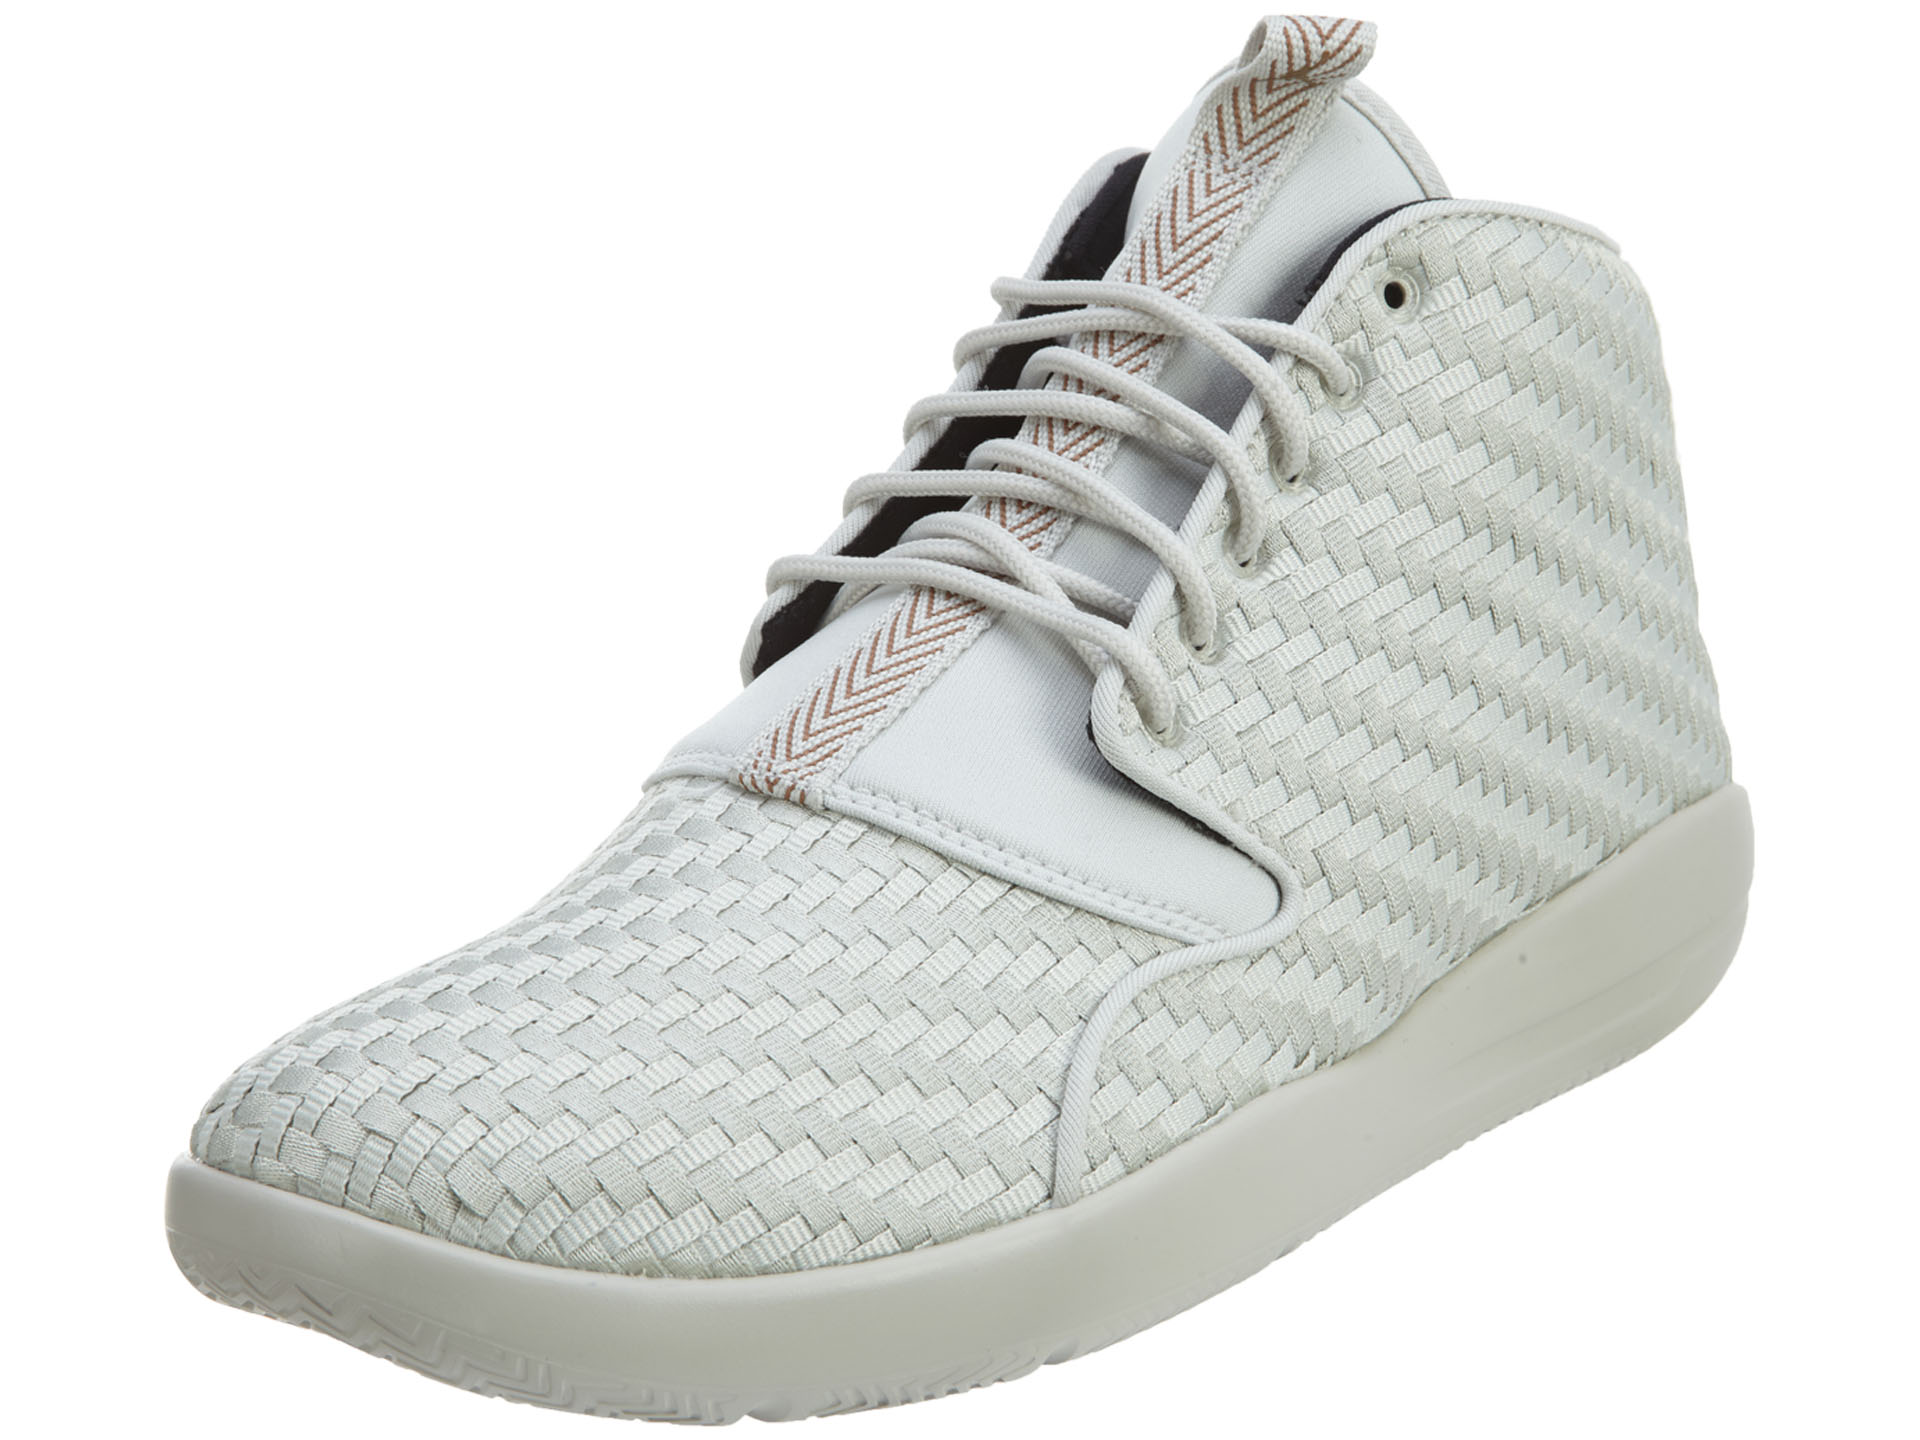 b744b84d8203f4 Air Jordan Mens Eclipse Chukka Sneakers 881453-015